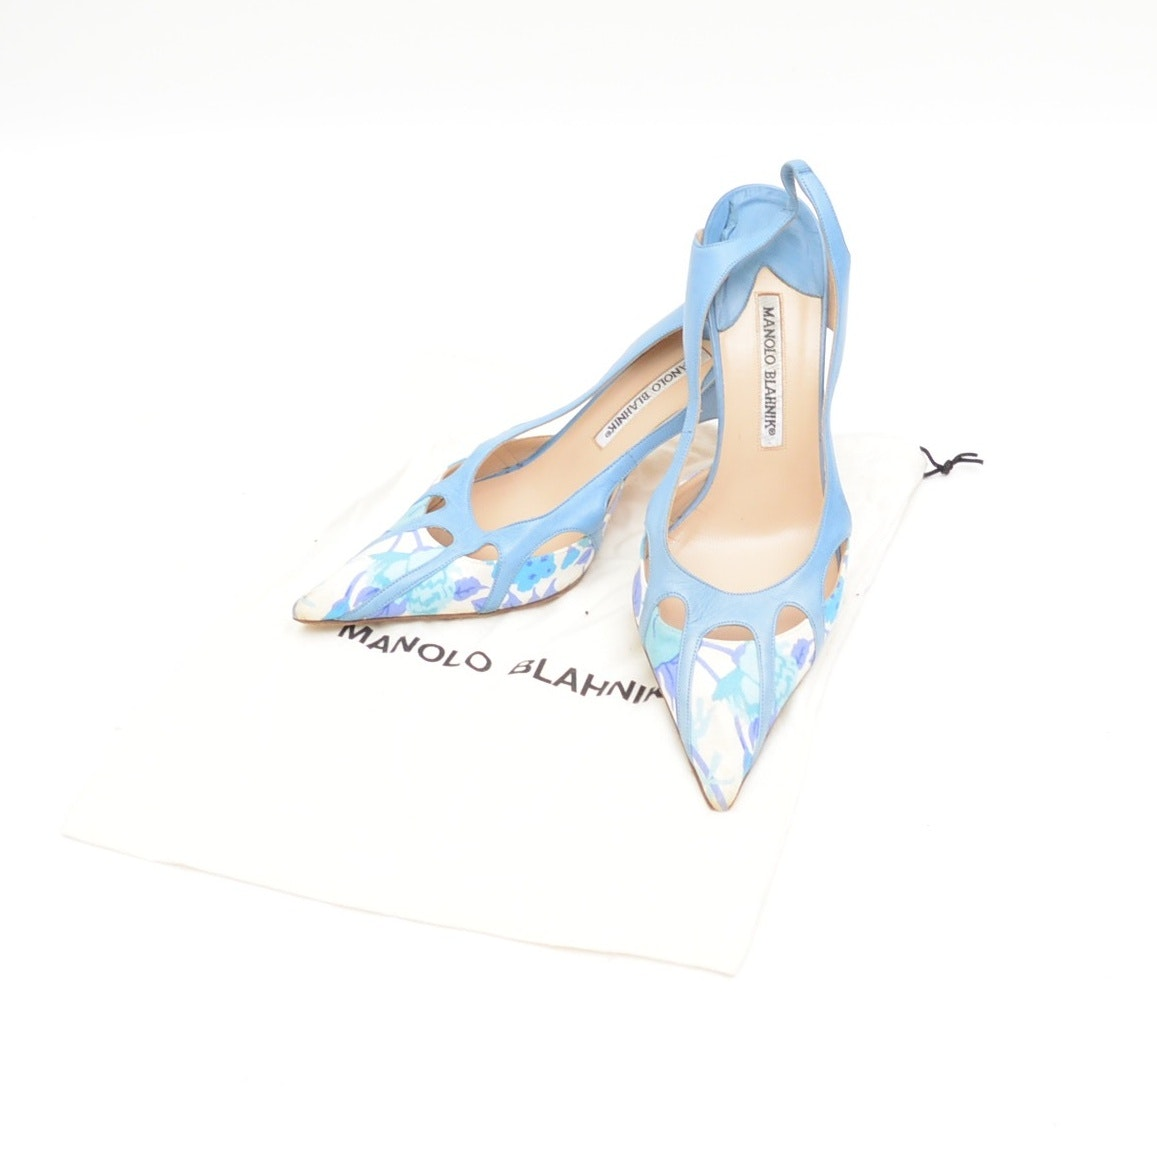 Pair of Manolo Blahnik Fabric and Leather Pointed Slingback Heels